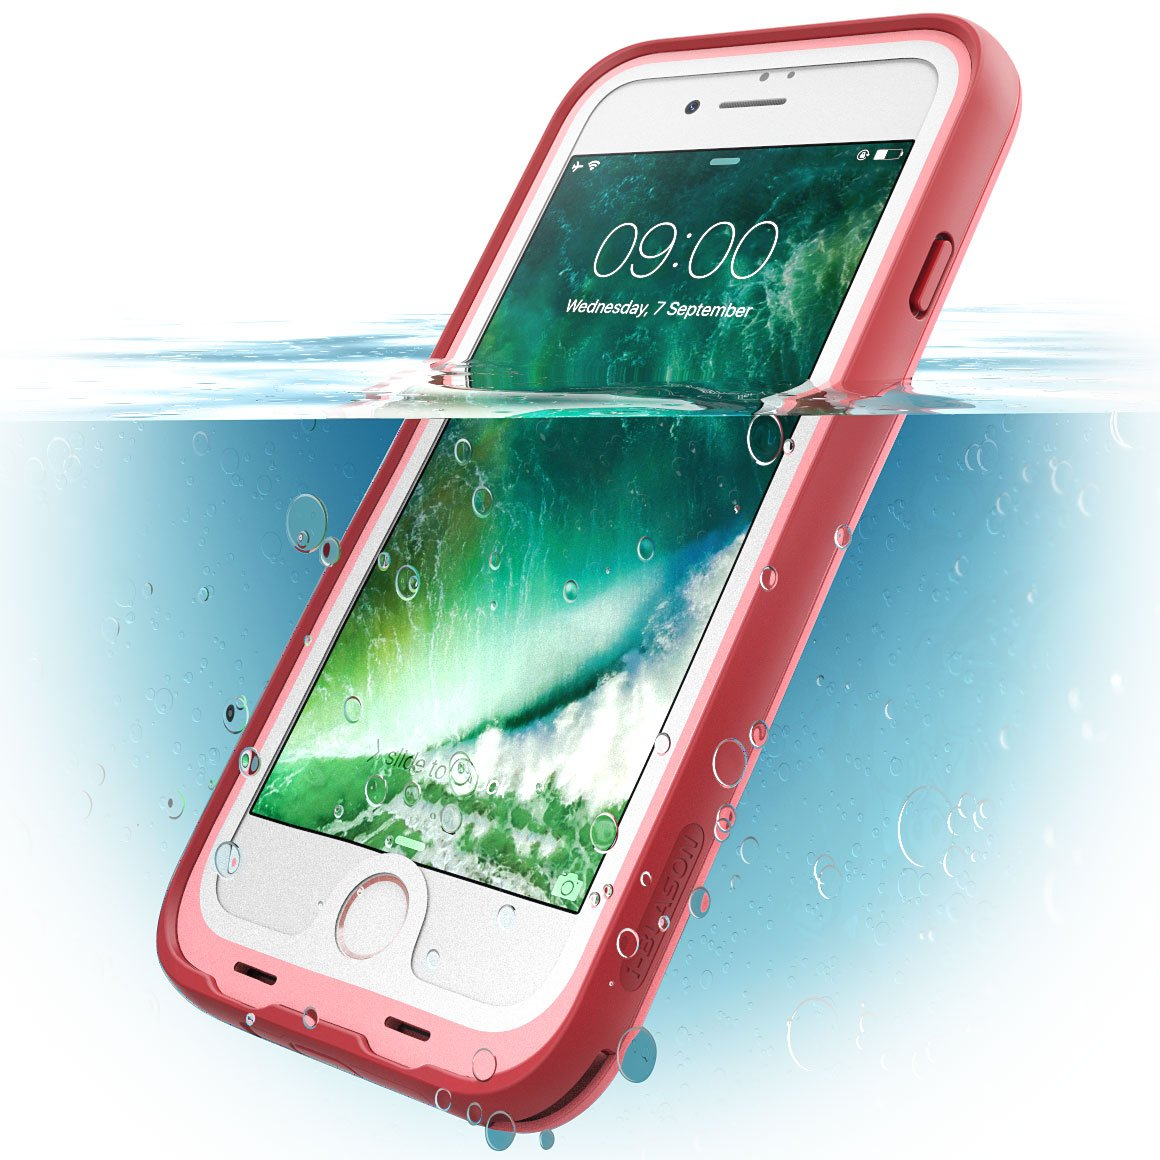 7f45682dde74b i-Blason Case for iPhone 7 2016 / iPhone 8 2017 Release, [Aegis] Waterproof  Full-Body Rugged Case with Built-in Screen Protector (Pink)